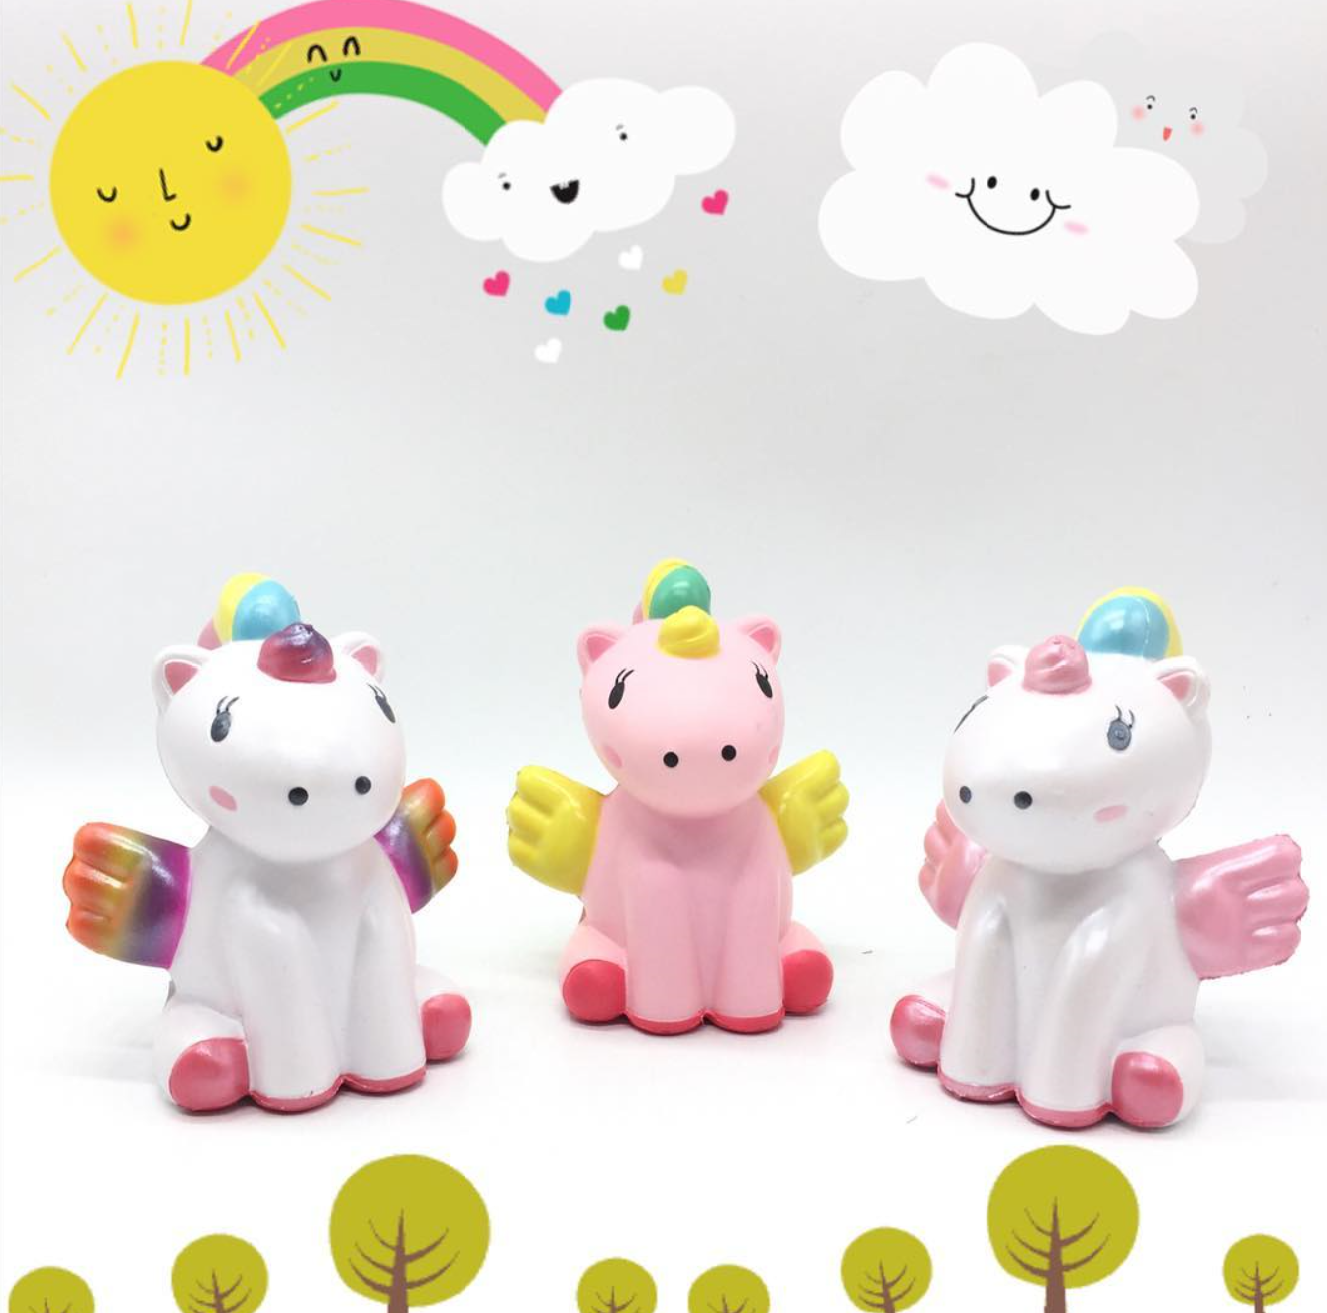 Rare Squishy Images : RARE Limited * Wawaii the magical Unicorn squishy